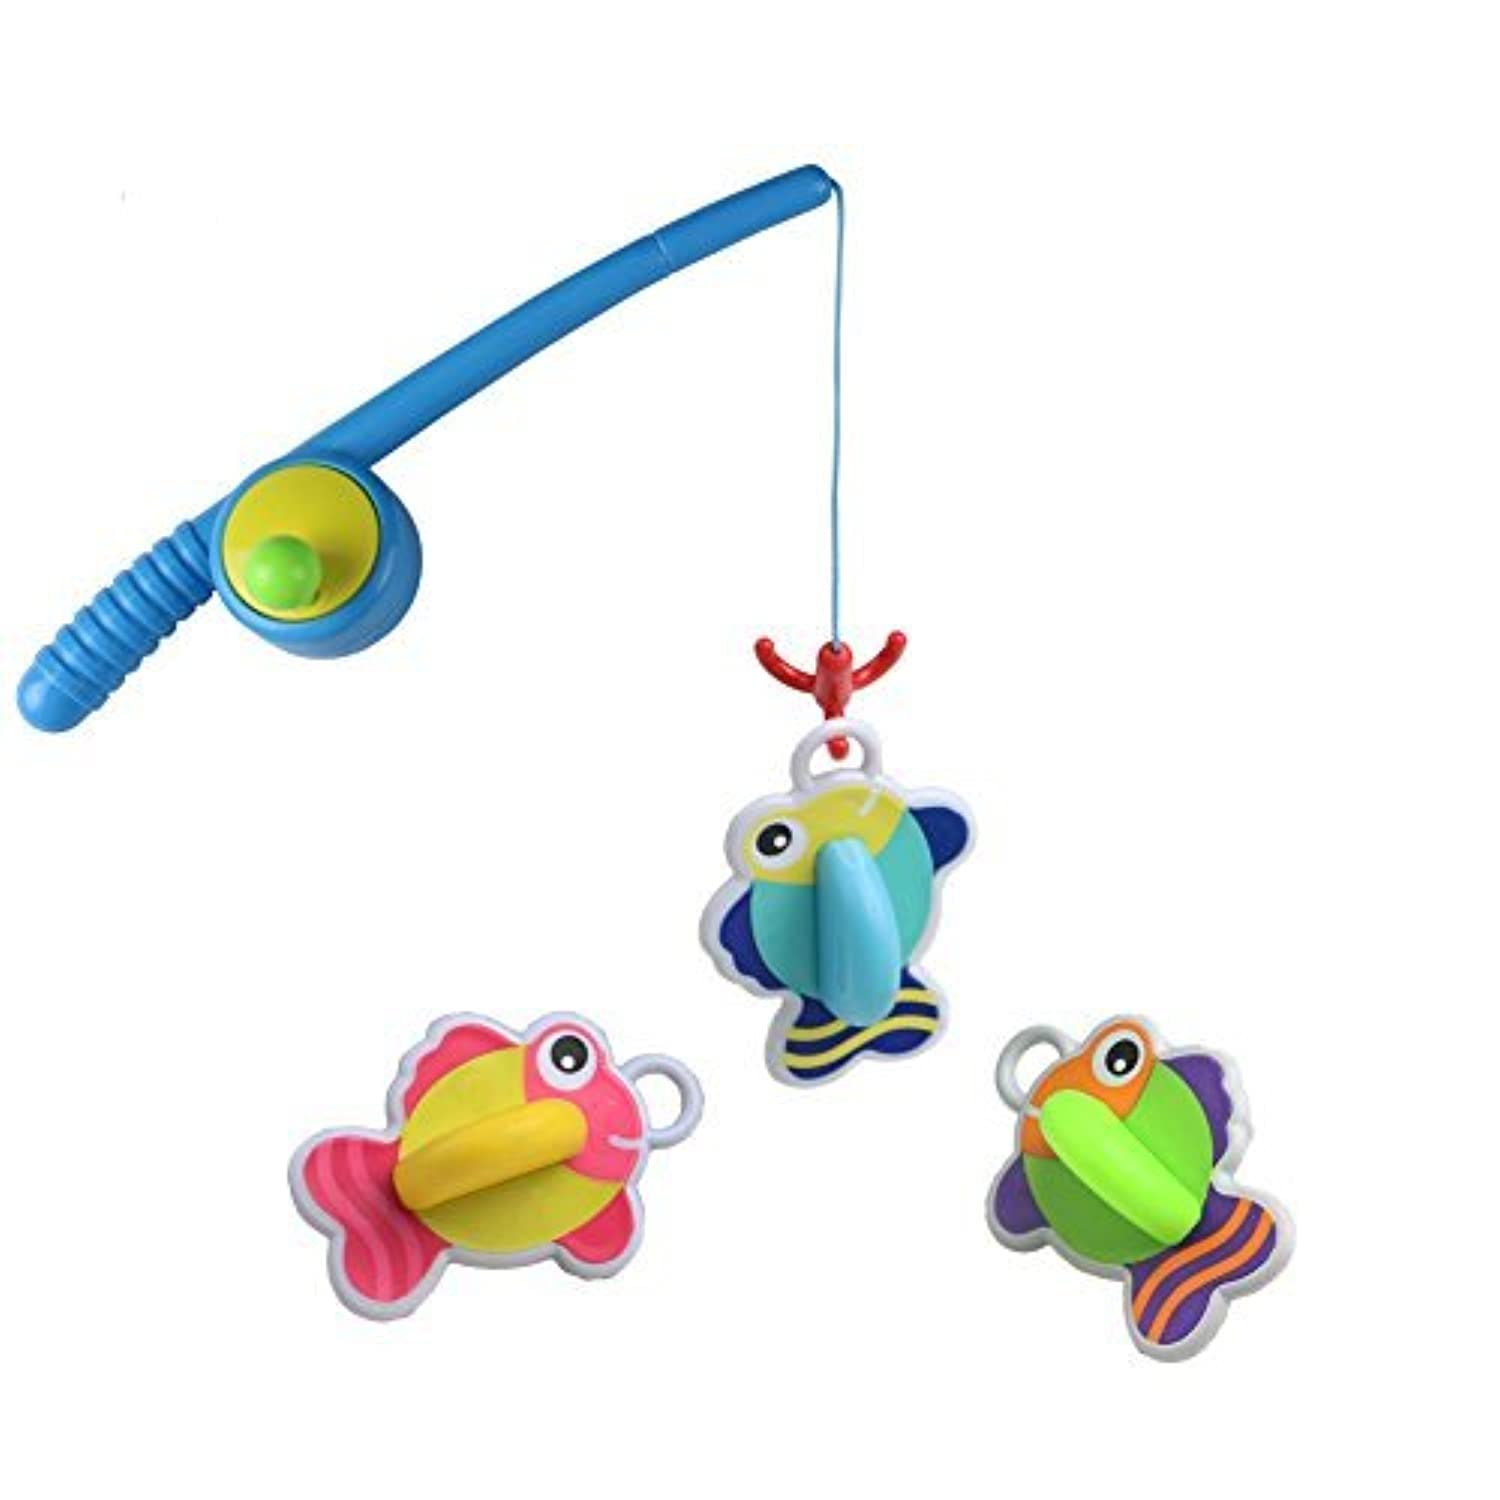 Yixin Bath Toys Fishing Game with Floating Fish Enjoy Bathing Fun Time Great Gift for Baby Kids Girls Boys 2 3 4 Years Old Early EducationRandom delivery [並行輸入品]